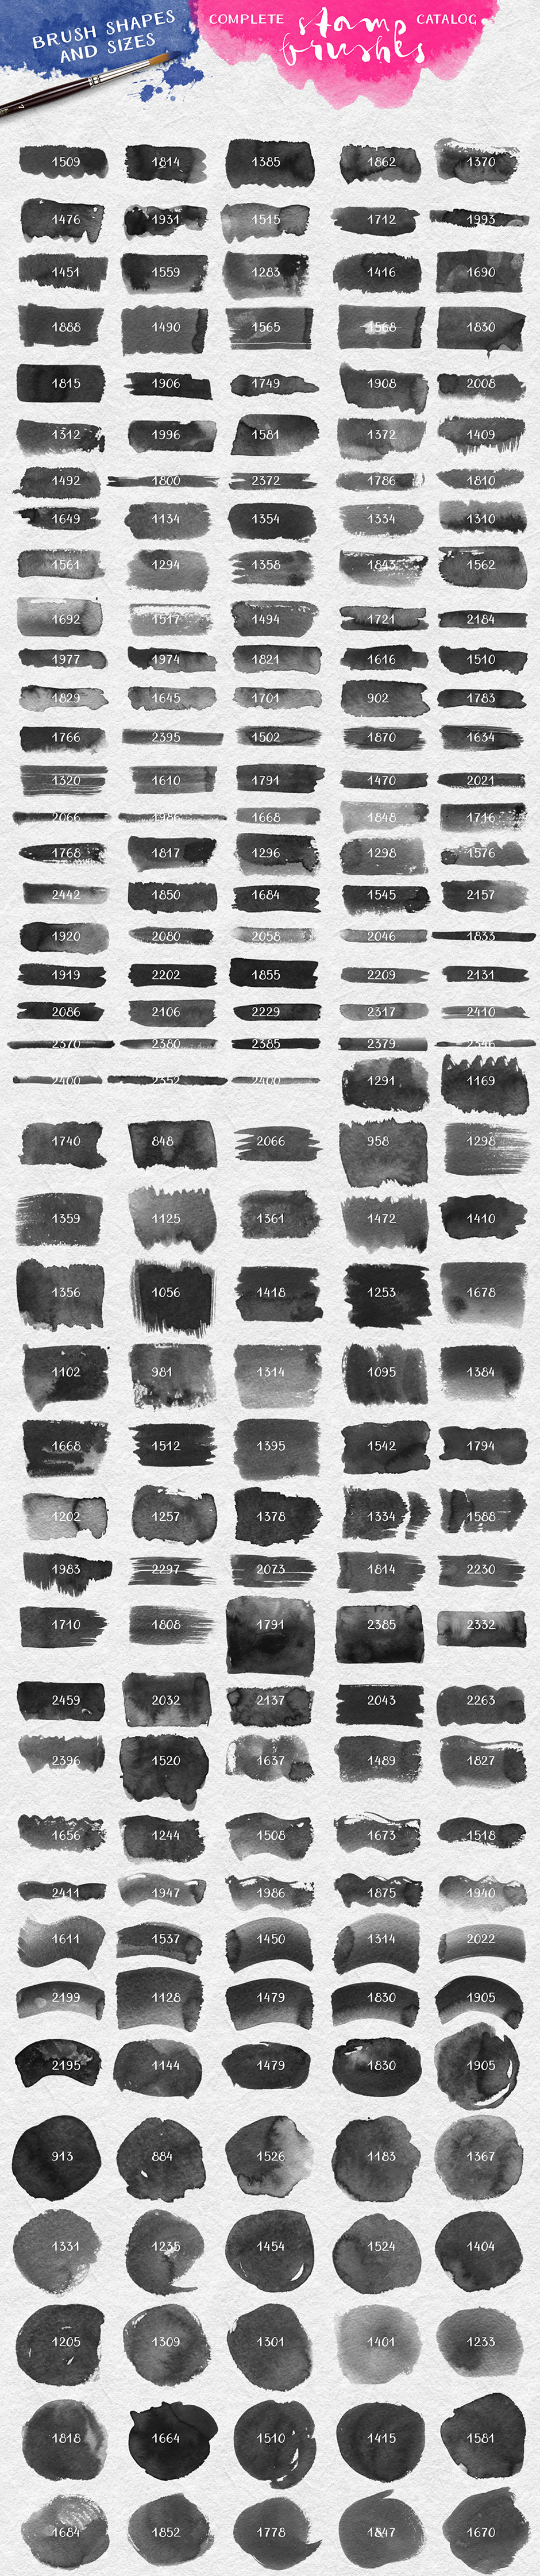 Watercolor Brush Stamps